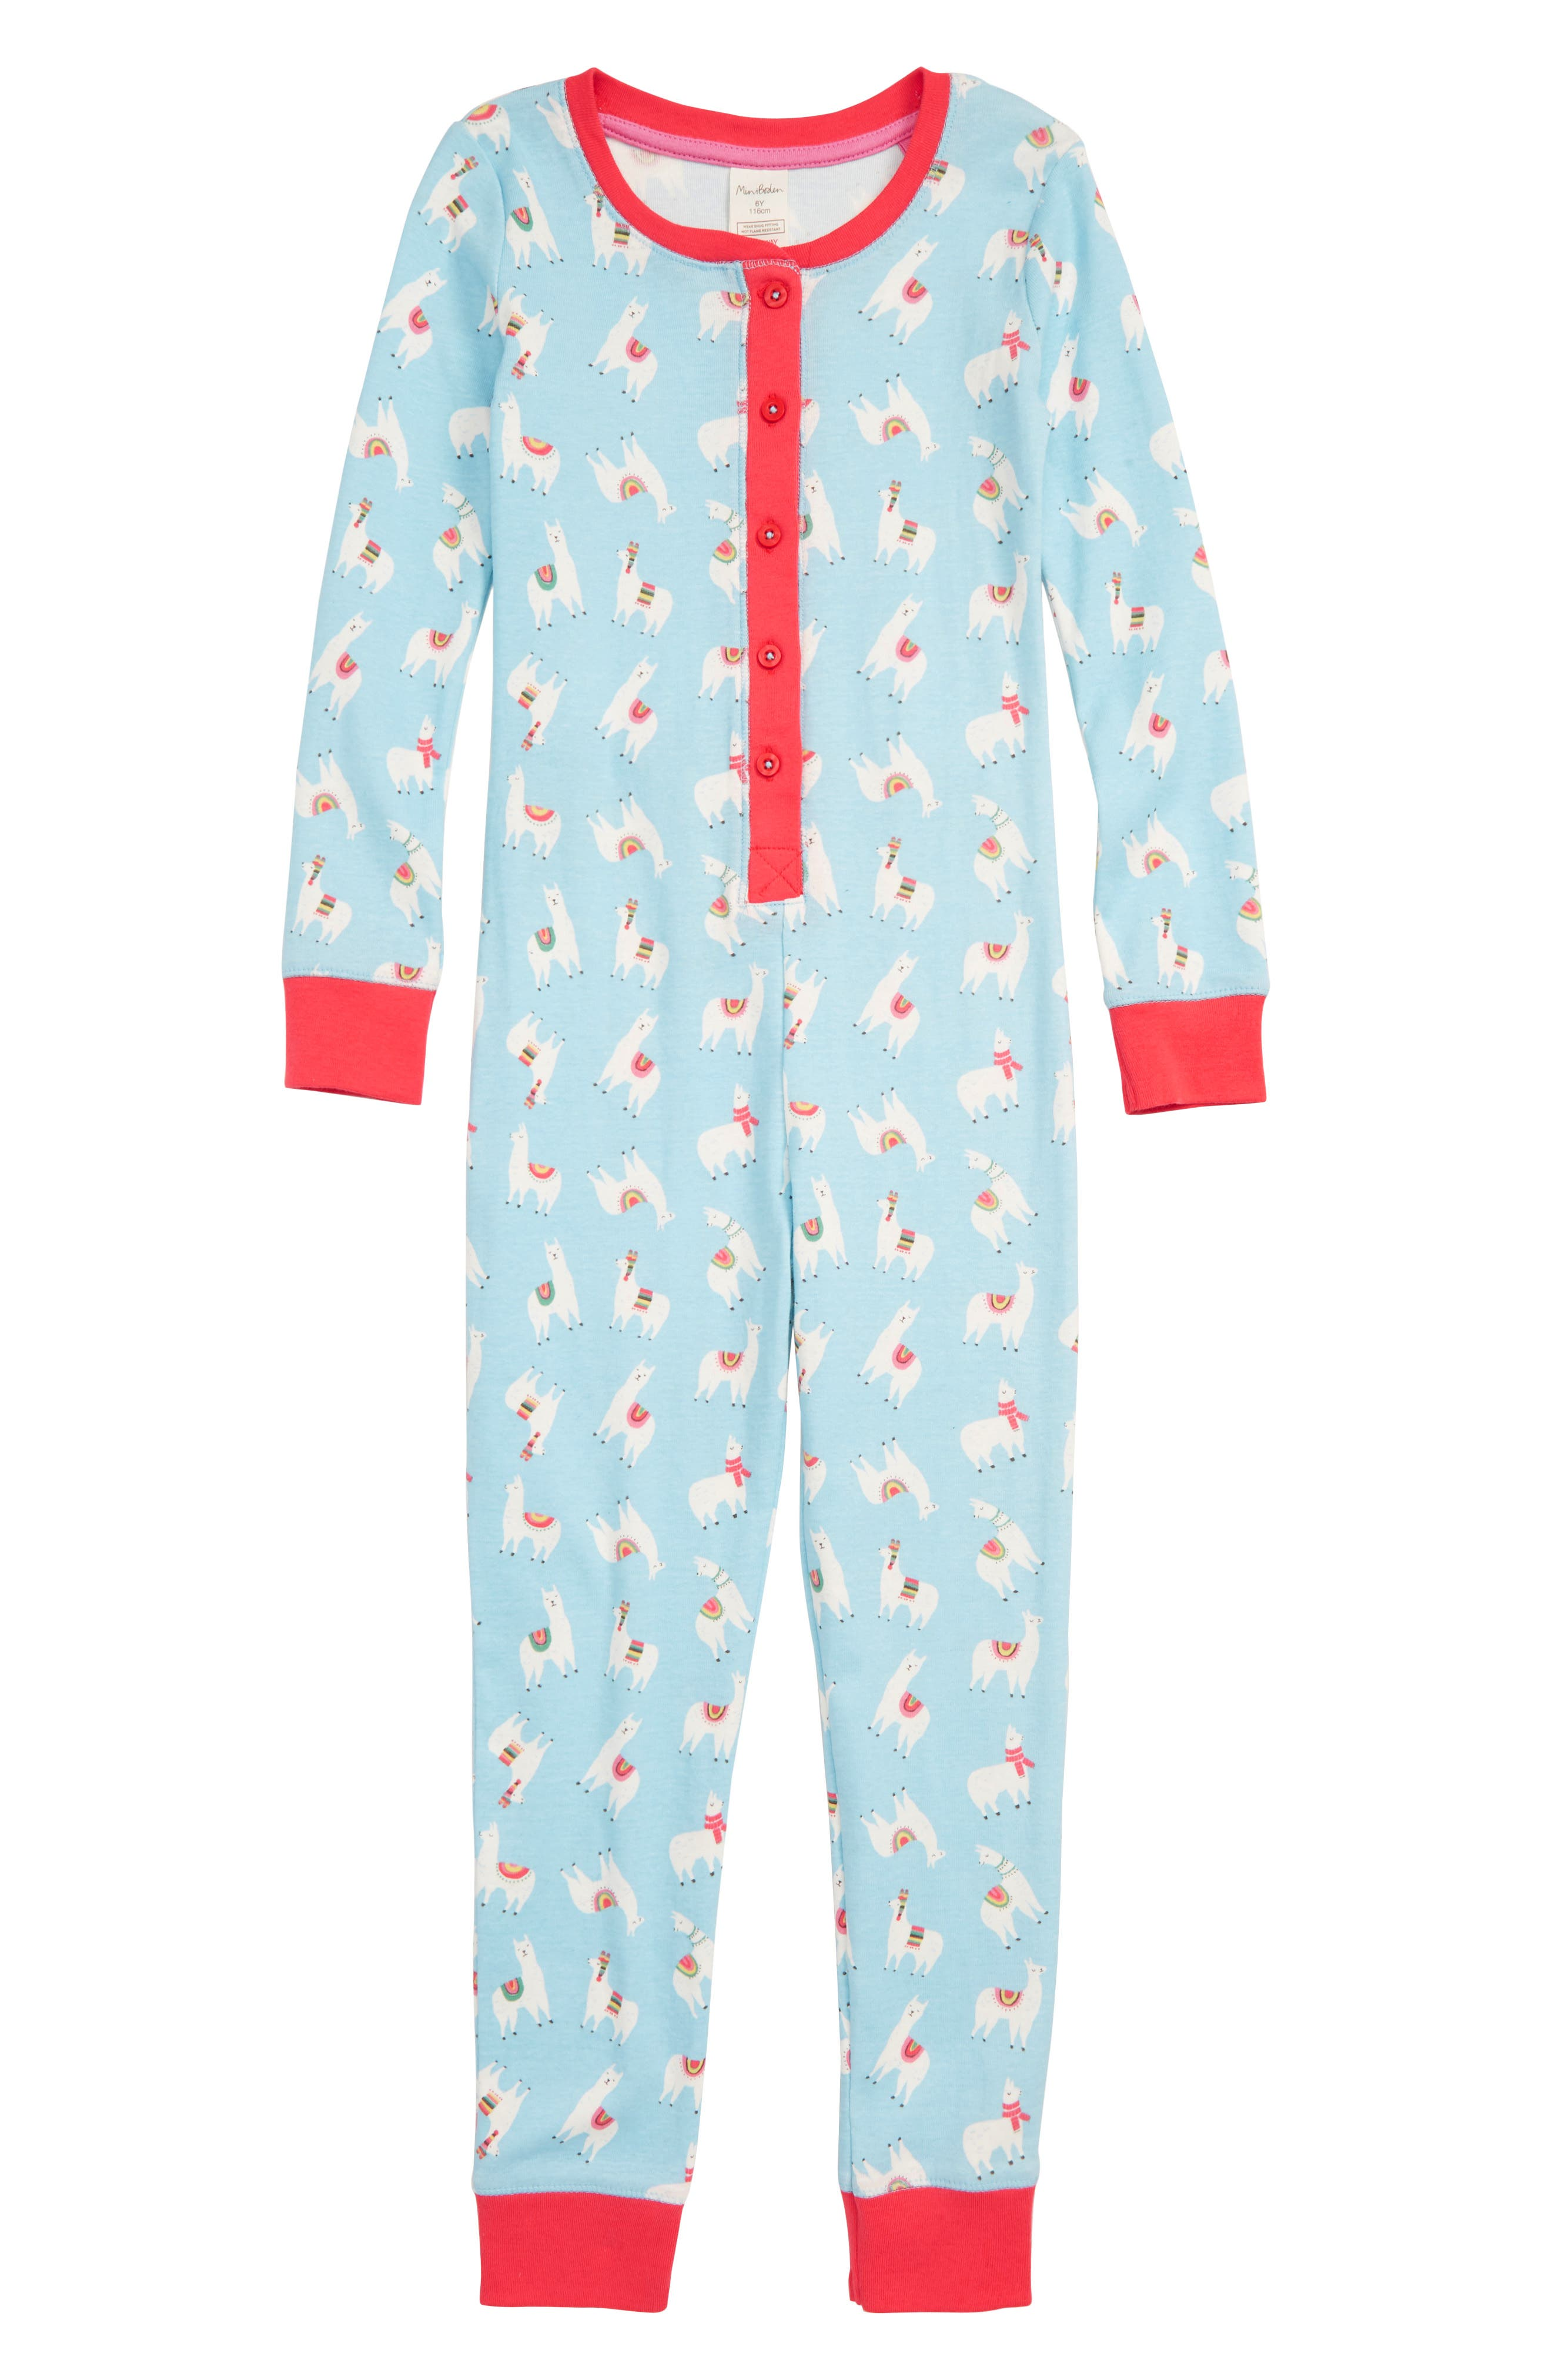 Girls Mini Boden Fitted Cosy All In One Pajamas Size 6Y  Blue